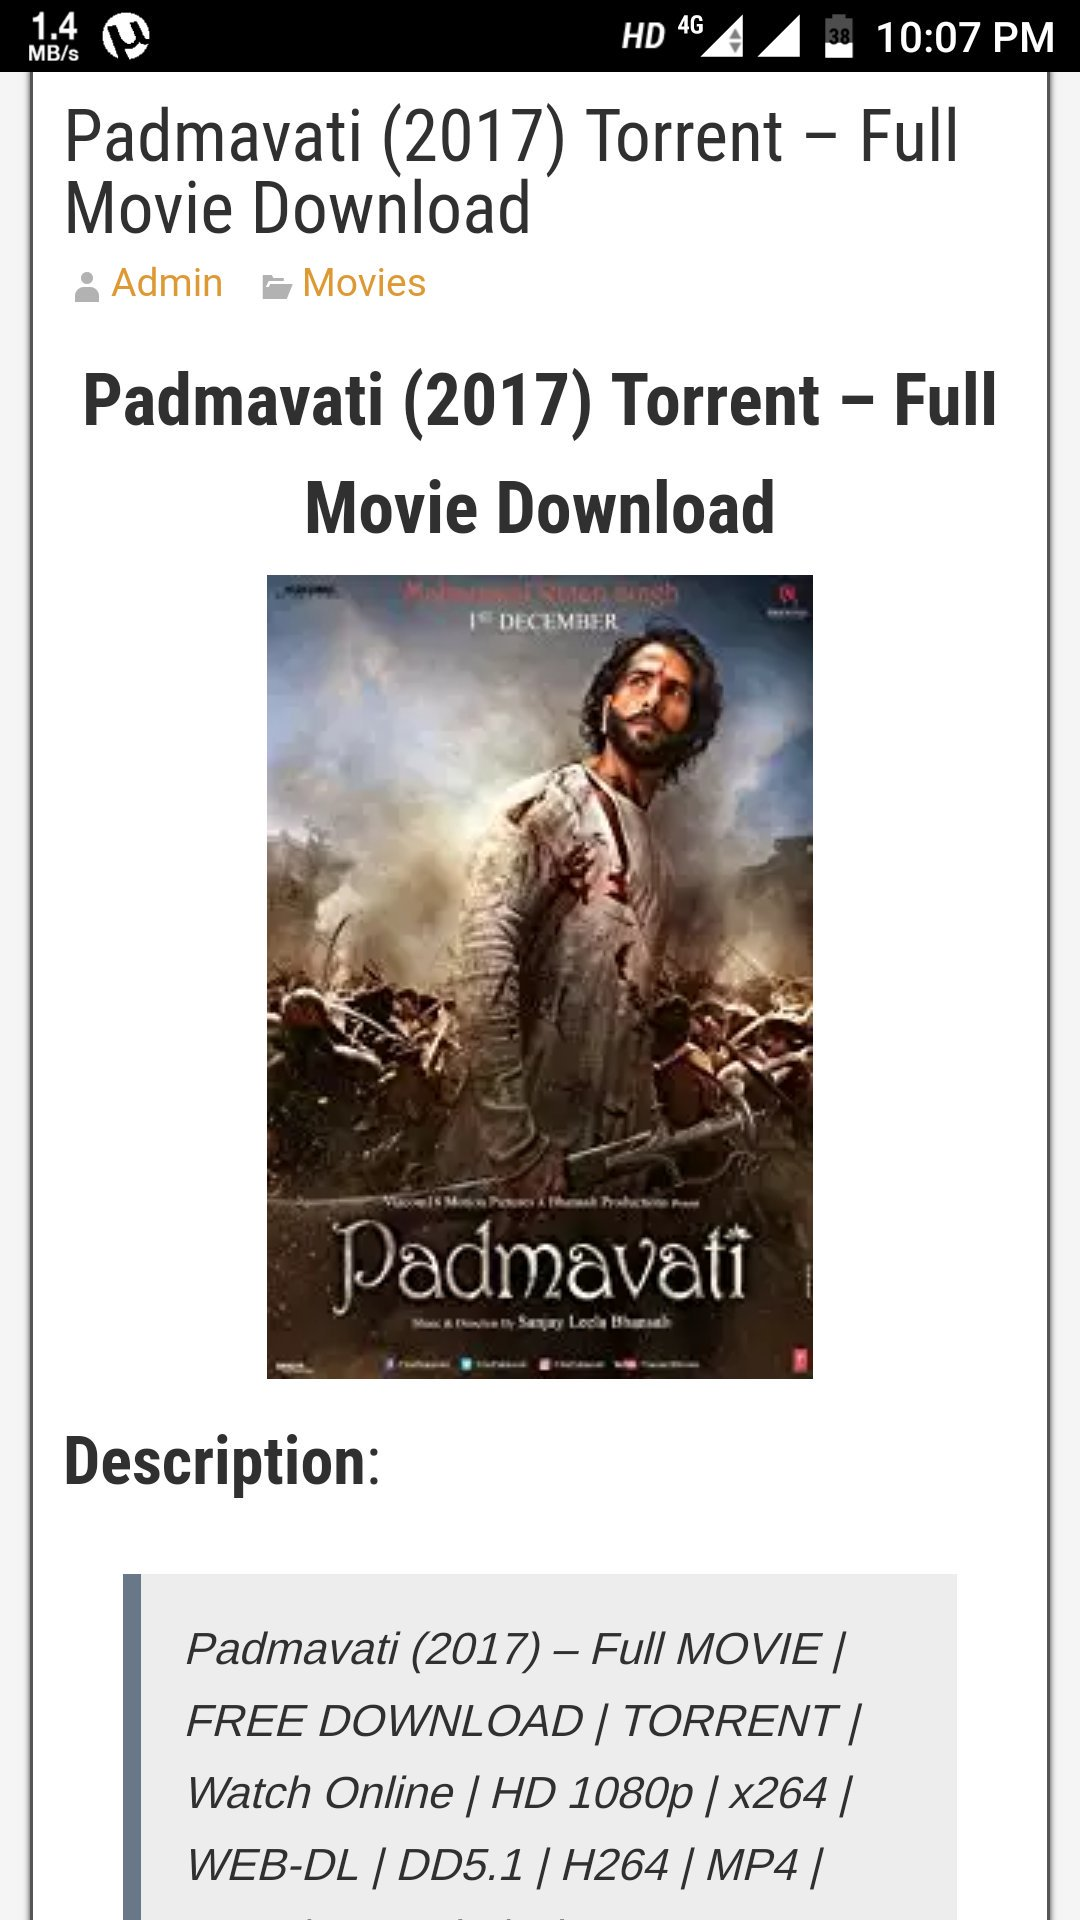 free download torrent movie padmavati